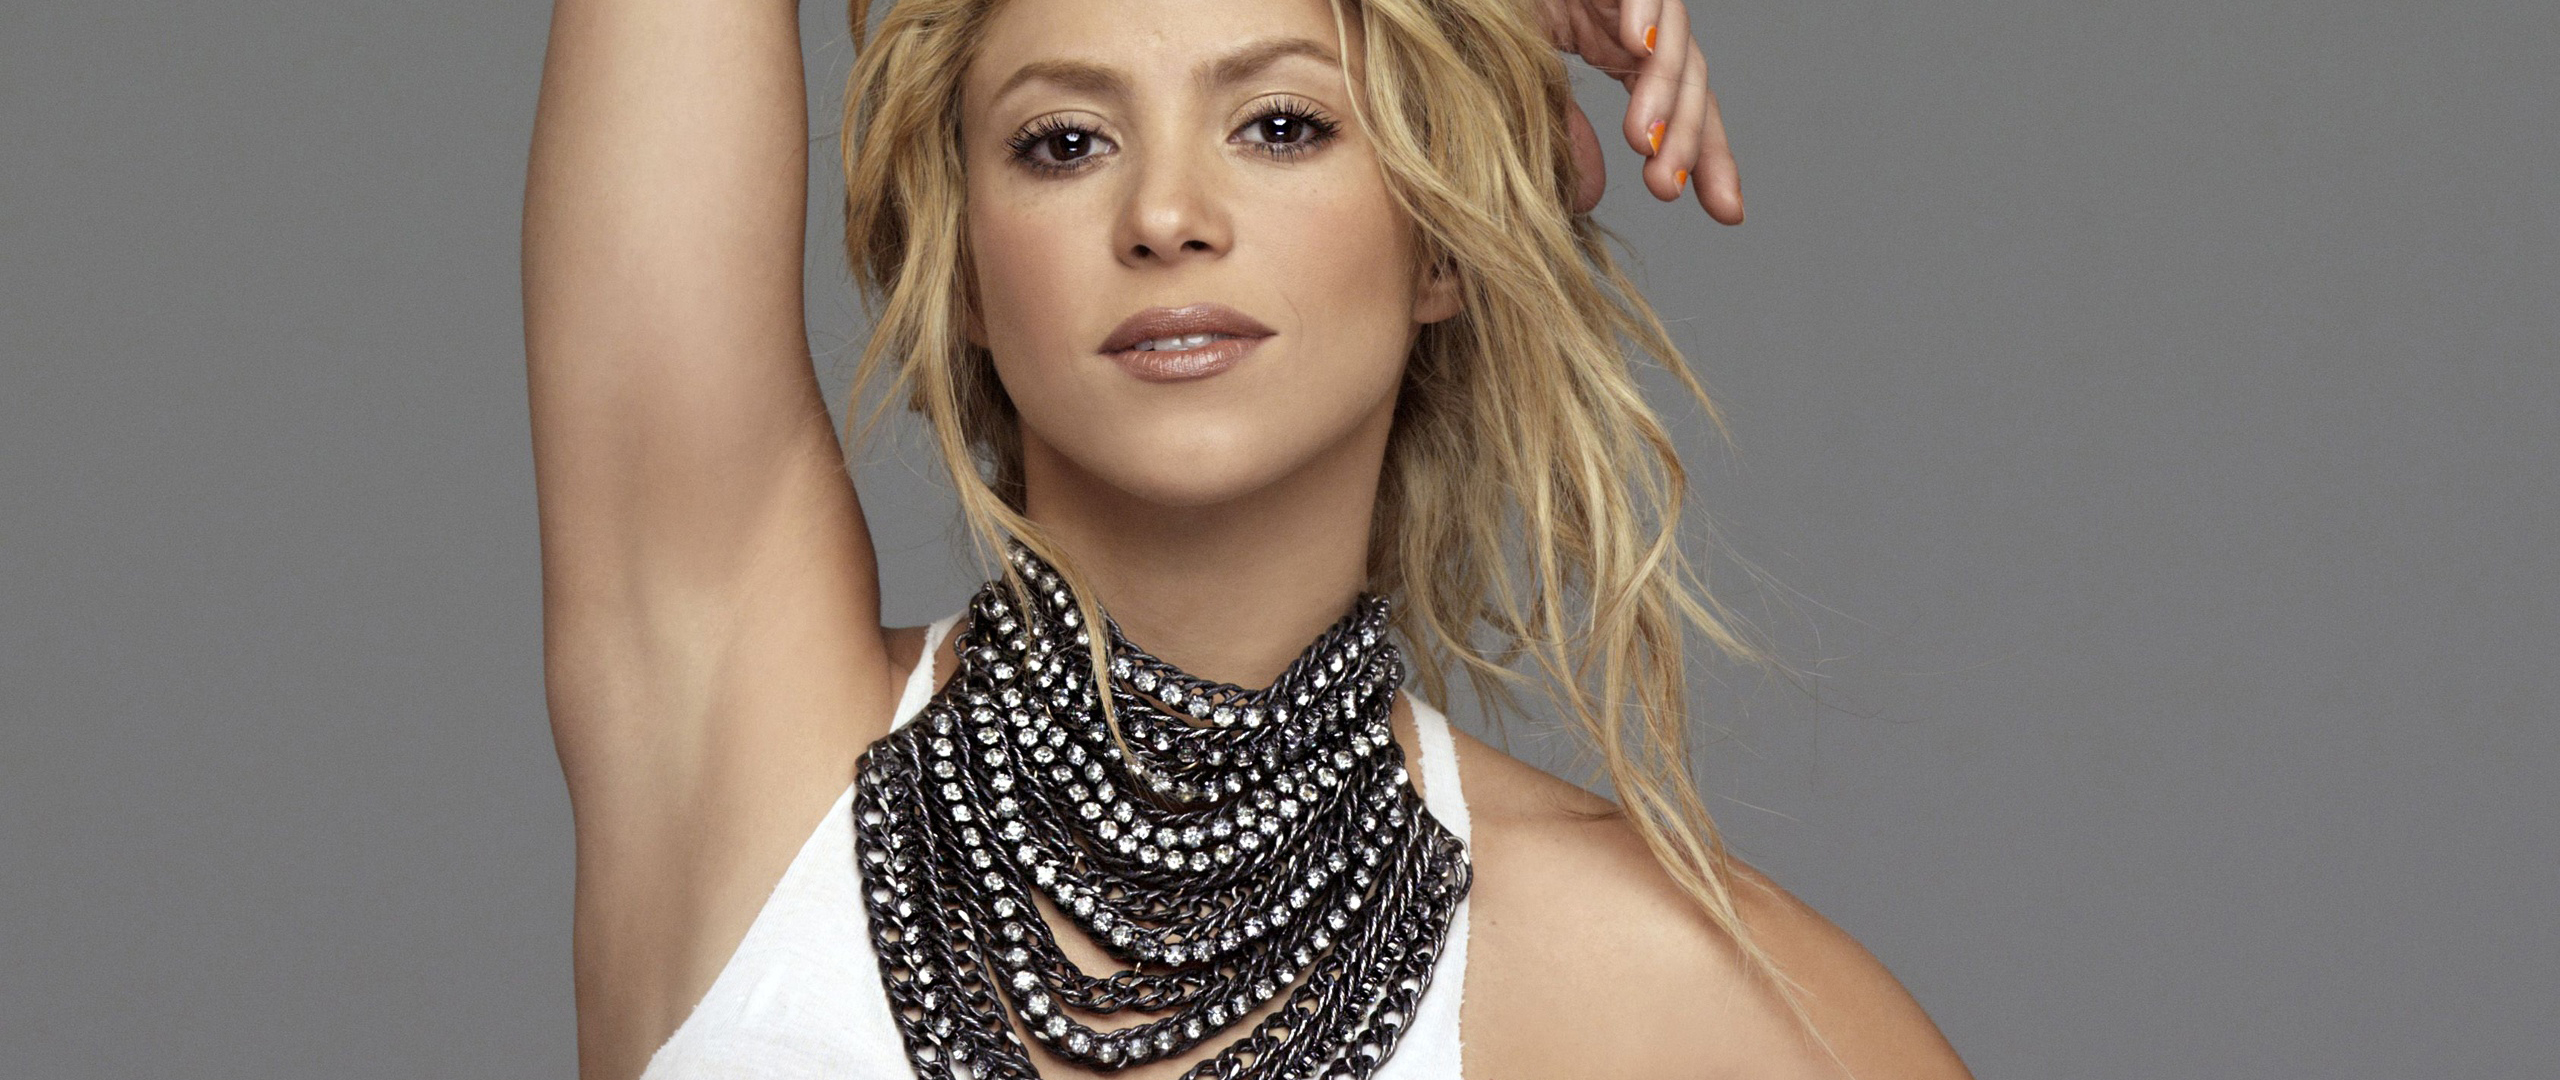 2560x1080 Shakira Wallpapers Free Download 2560x1080 Resolution Wallpaper Hd Celebrities 4k Wallpapers Images Photos And Background